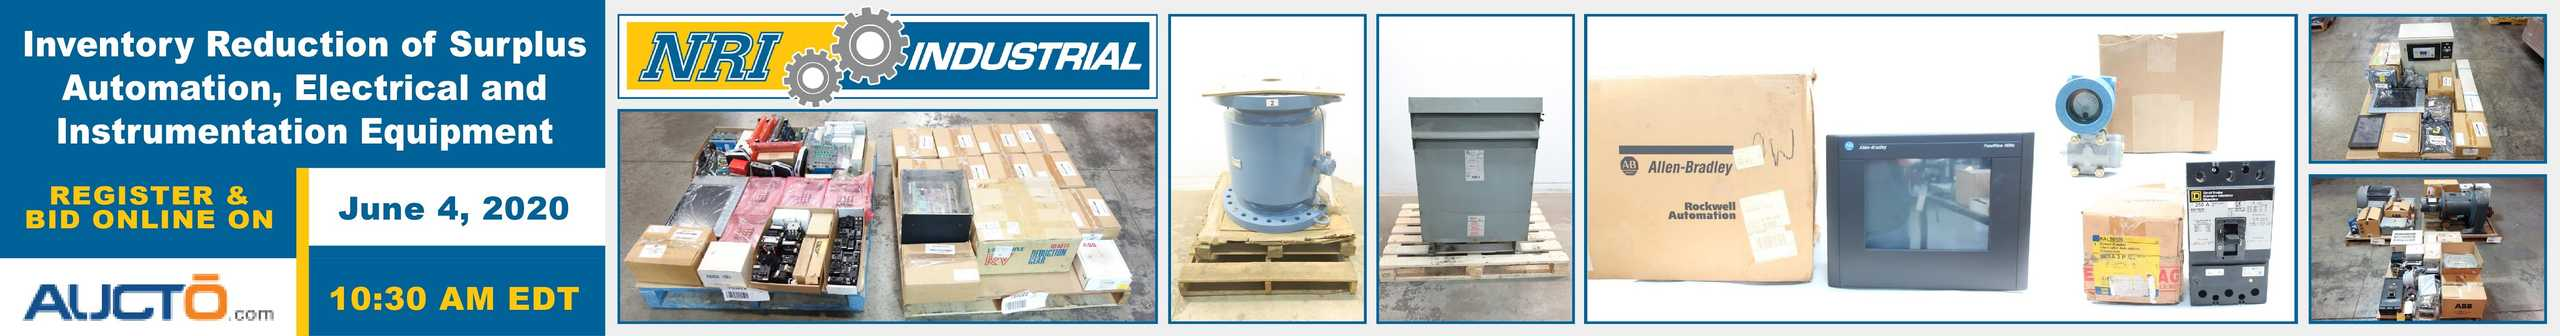 Buy Surplus Industrial Equipment